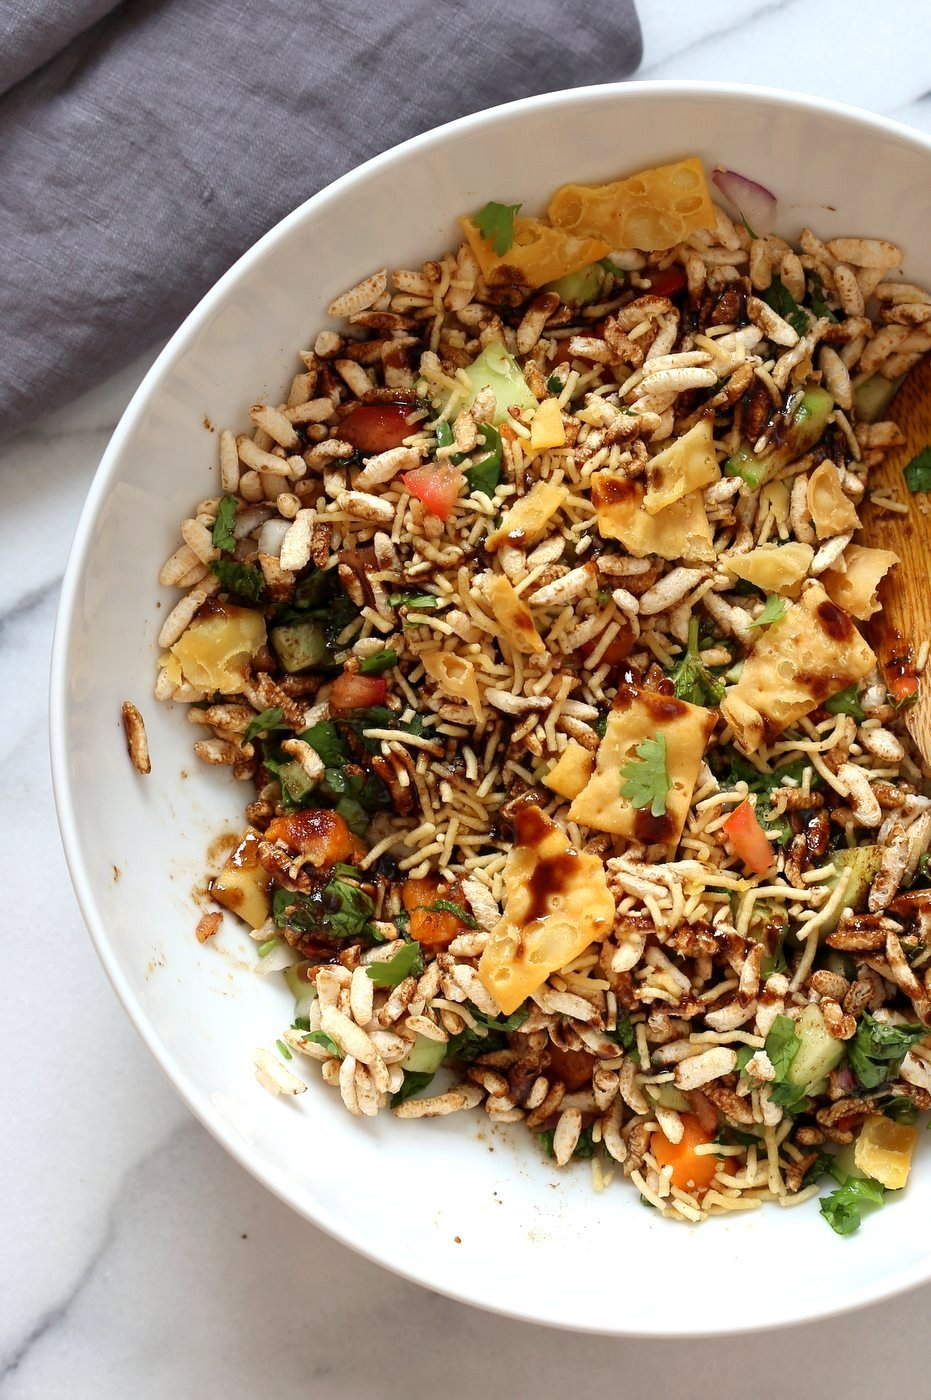 Sweet Potato Bhel Recipe - Indian Street Food style Snack Salad with Mint and Tamarind Chutney. Puffed Rice tossed with cooked sweet potato, nuts, onion, cucumber and tomato and dressed in chopped mint and 5 minute Tamarind Chutney. Vegan Bhel Puri Recipe. Can be glutenfree and nutfree. | VeganRicha.com